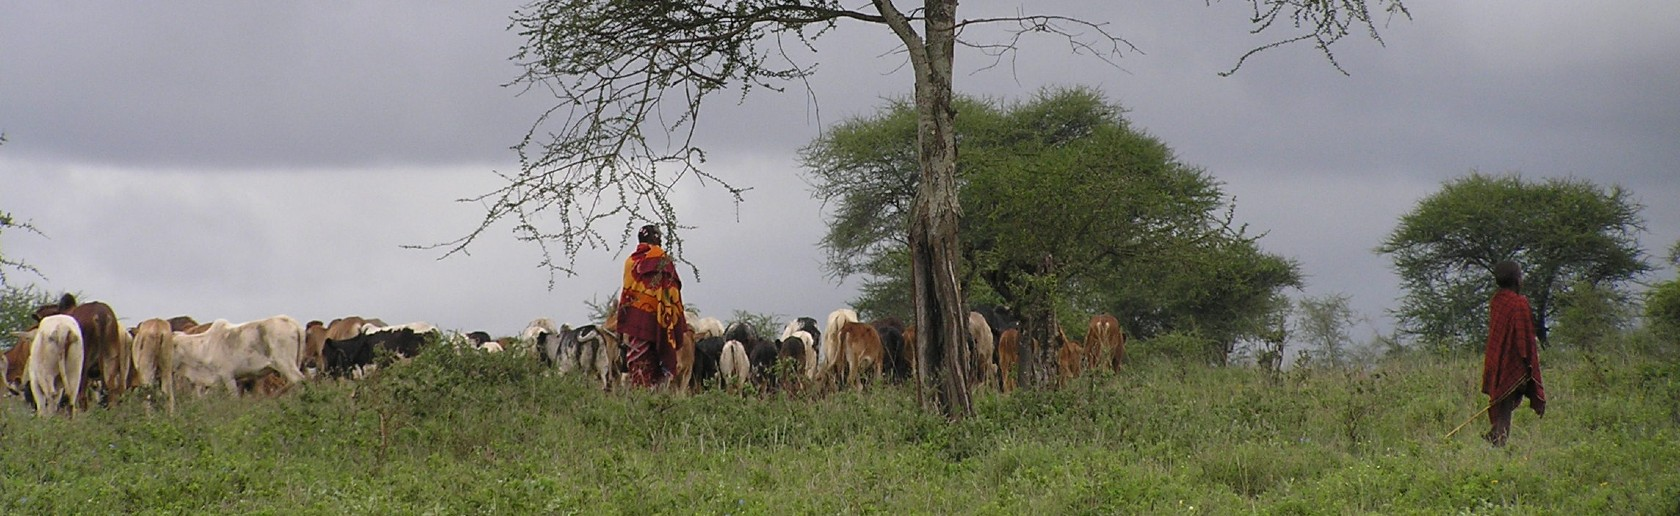 Two tribesmen in long grass, herding cattle, with trees around them